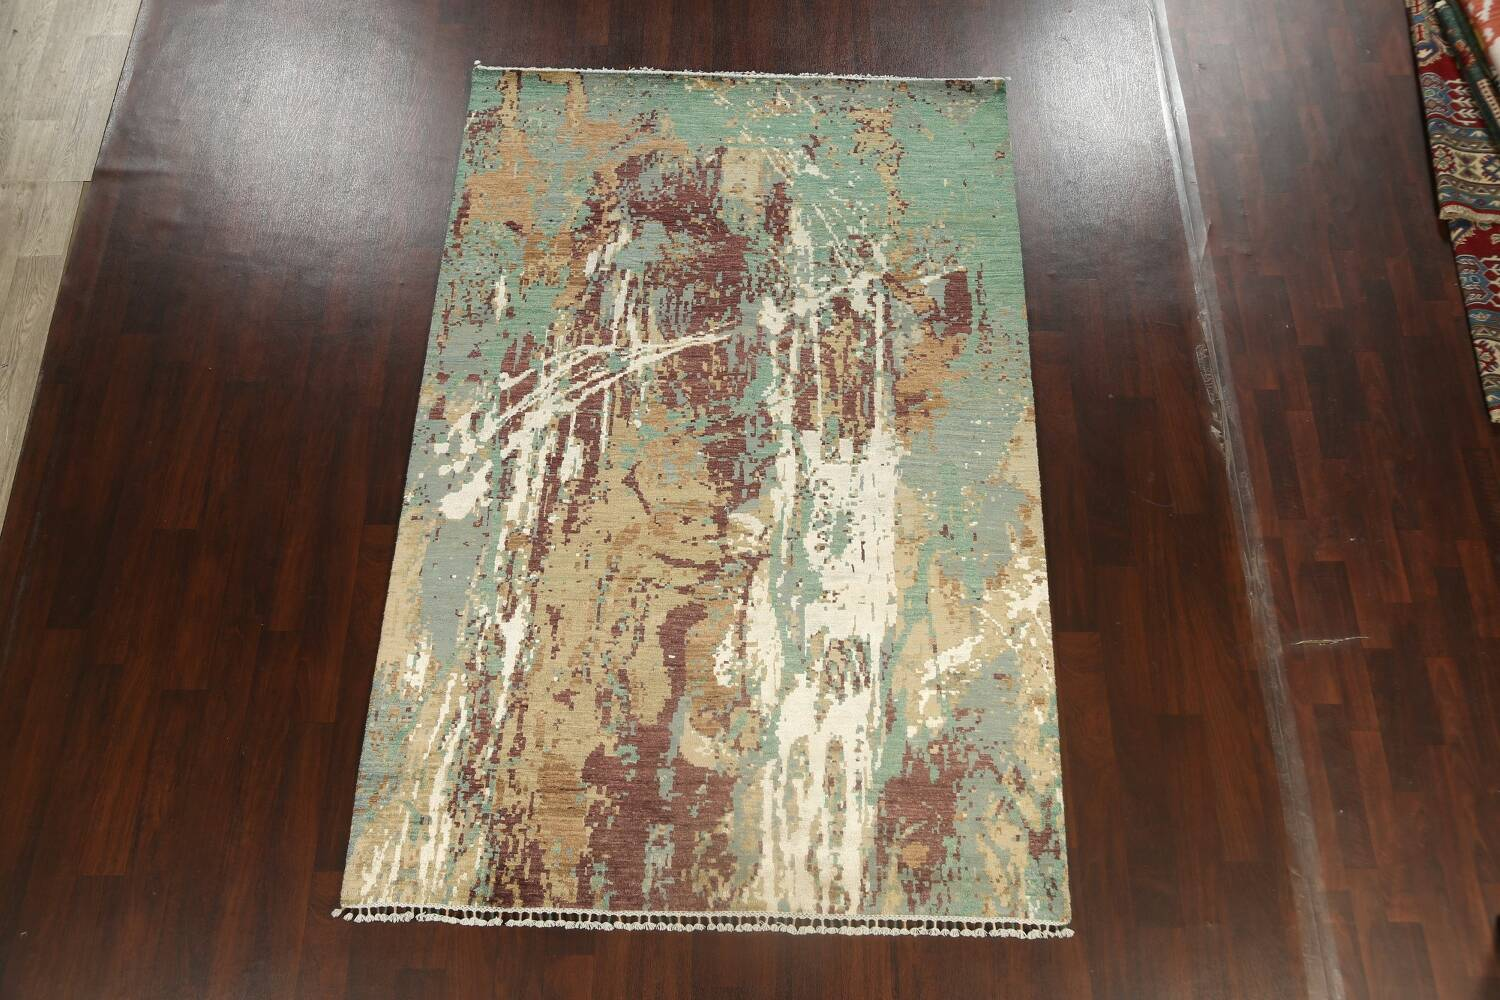 Vegetable Dye Contemporary Abstract Oriental Area Rug 6x9 image 2